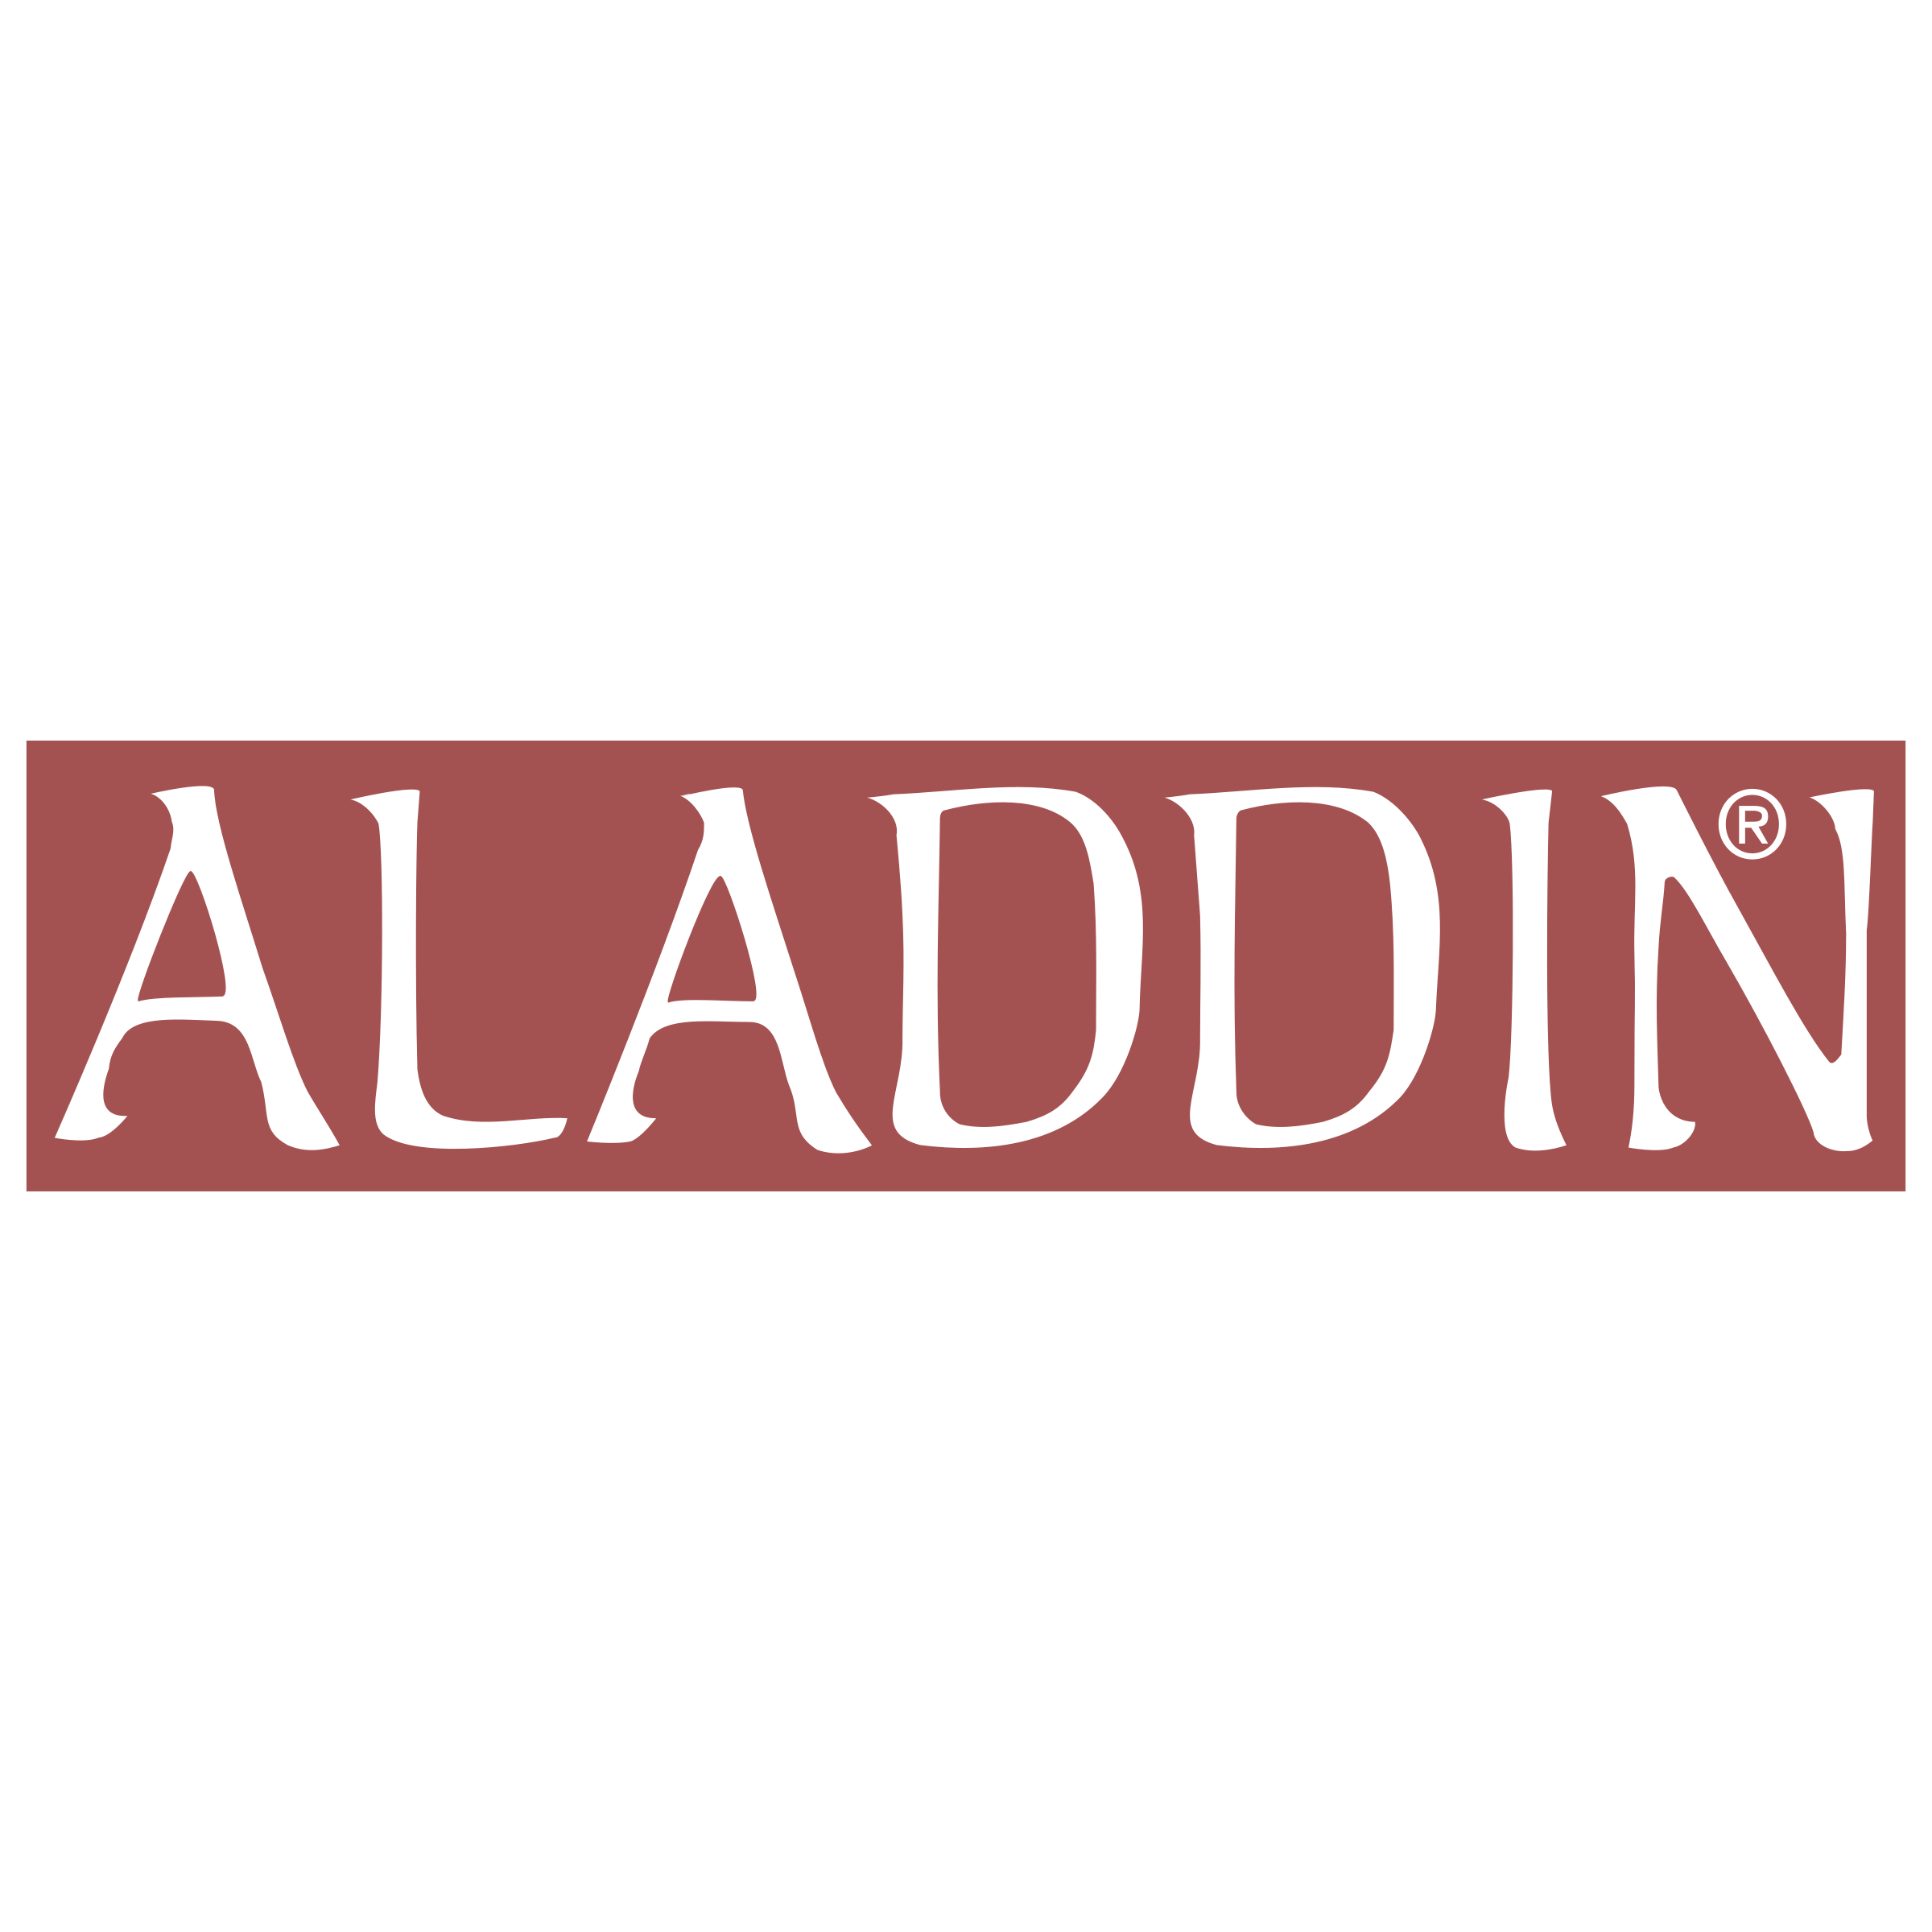 Aladdin Knowledge Systems Logo PNG Transparent  for Aladdin Logo Vector  55dqh